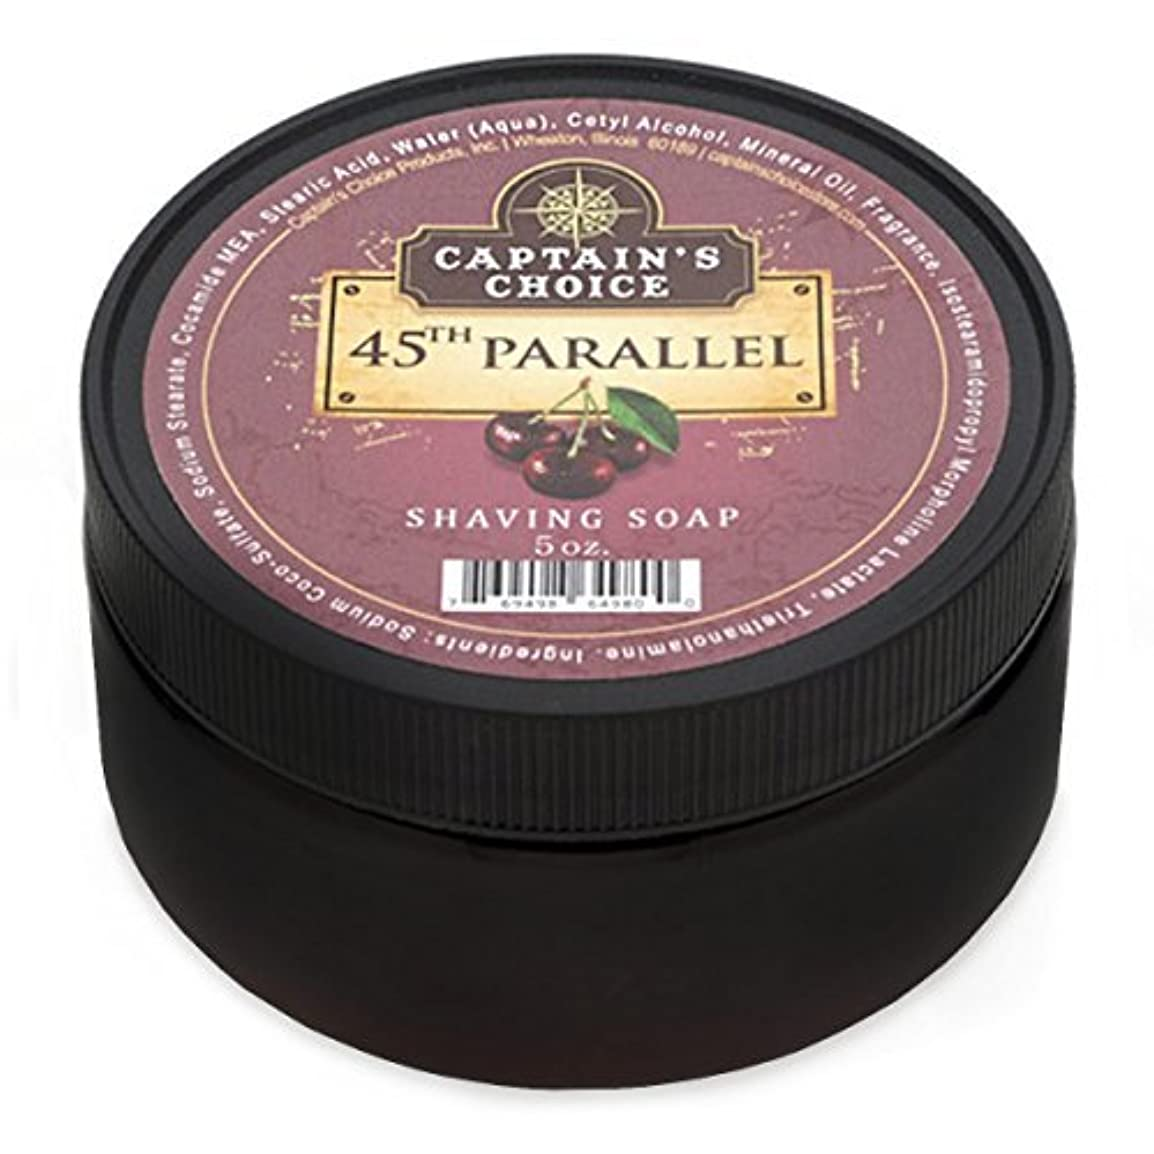 ボンド神聖哲学Captain's Choice 45th Parallel Shaving Soap 4oz [並行輸入品]